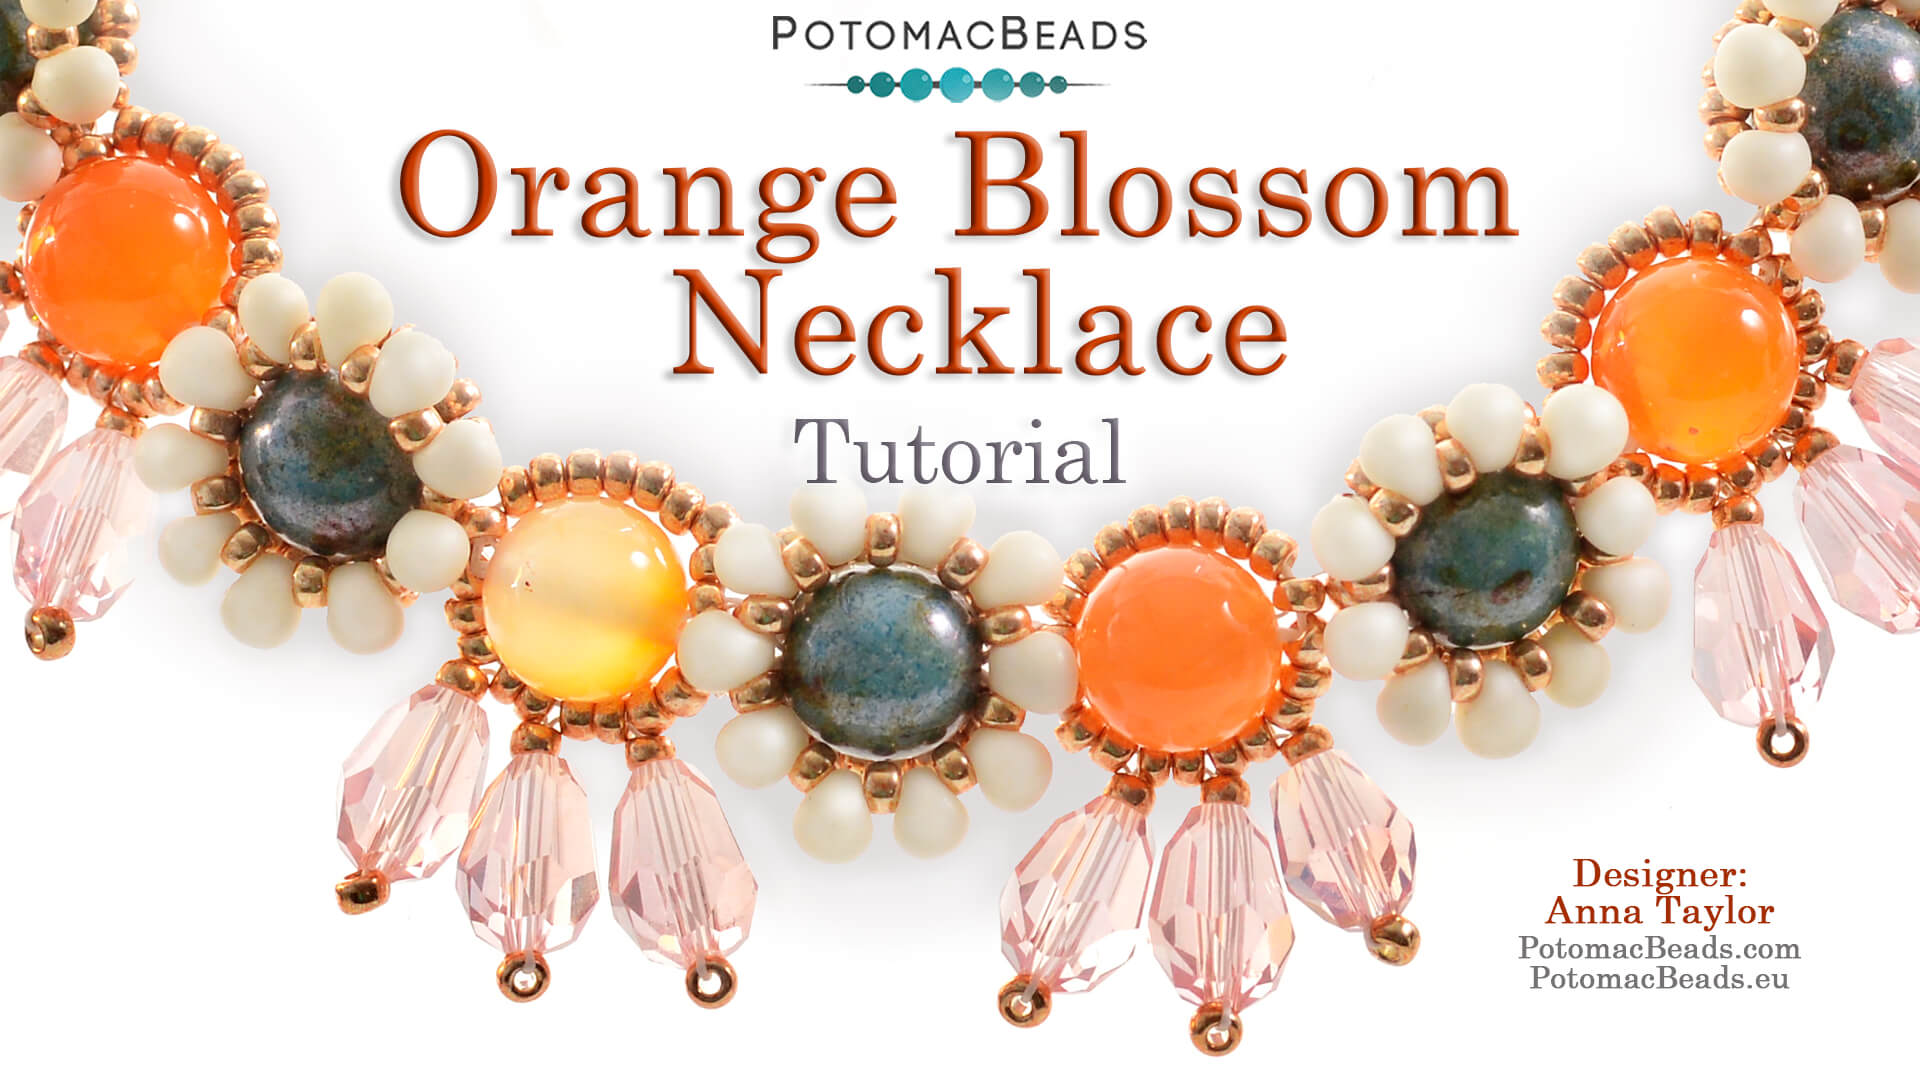 How to Bead Jewelry / Videos Sorted by Beads / Gemstone Videos / Orange Blossom Necklace Tutorial